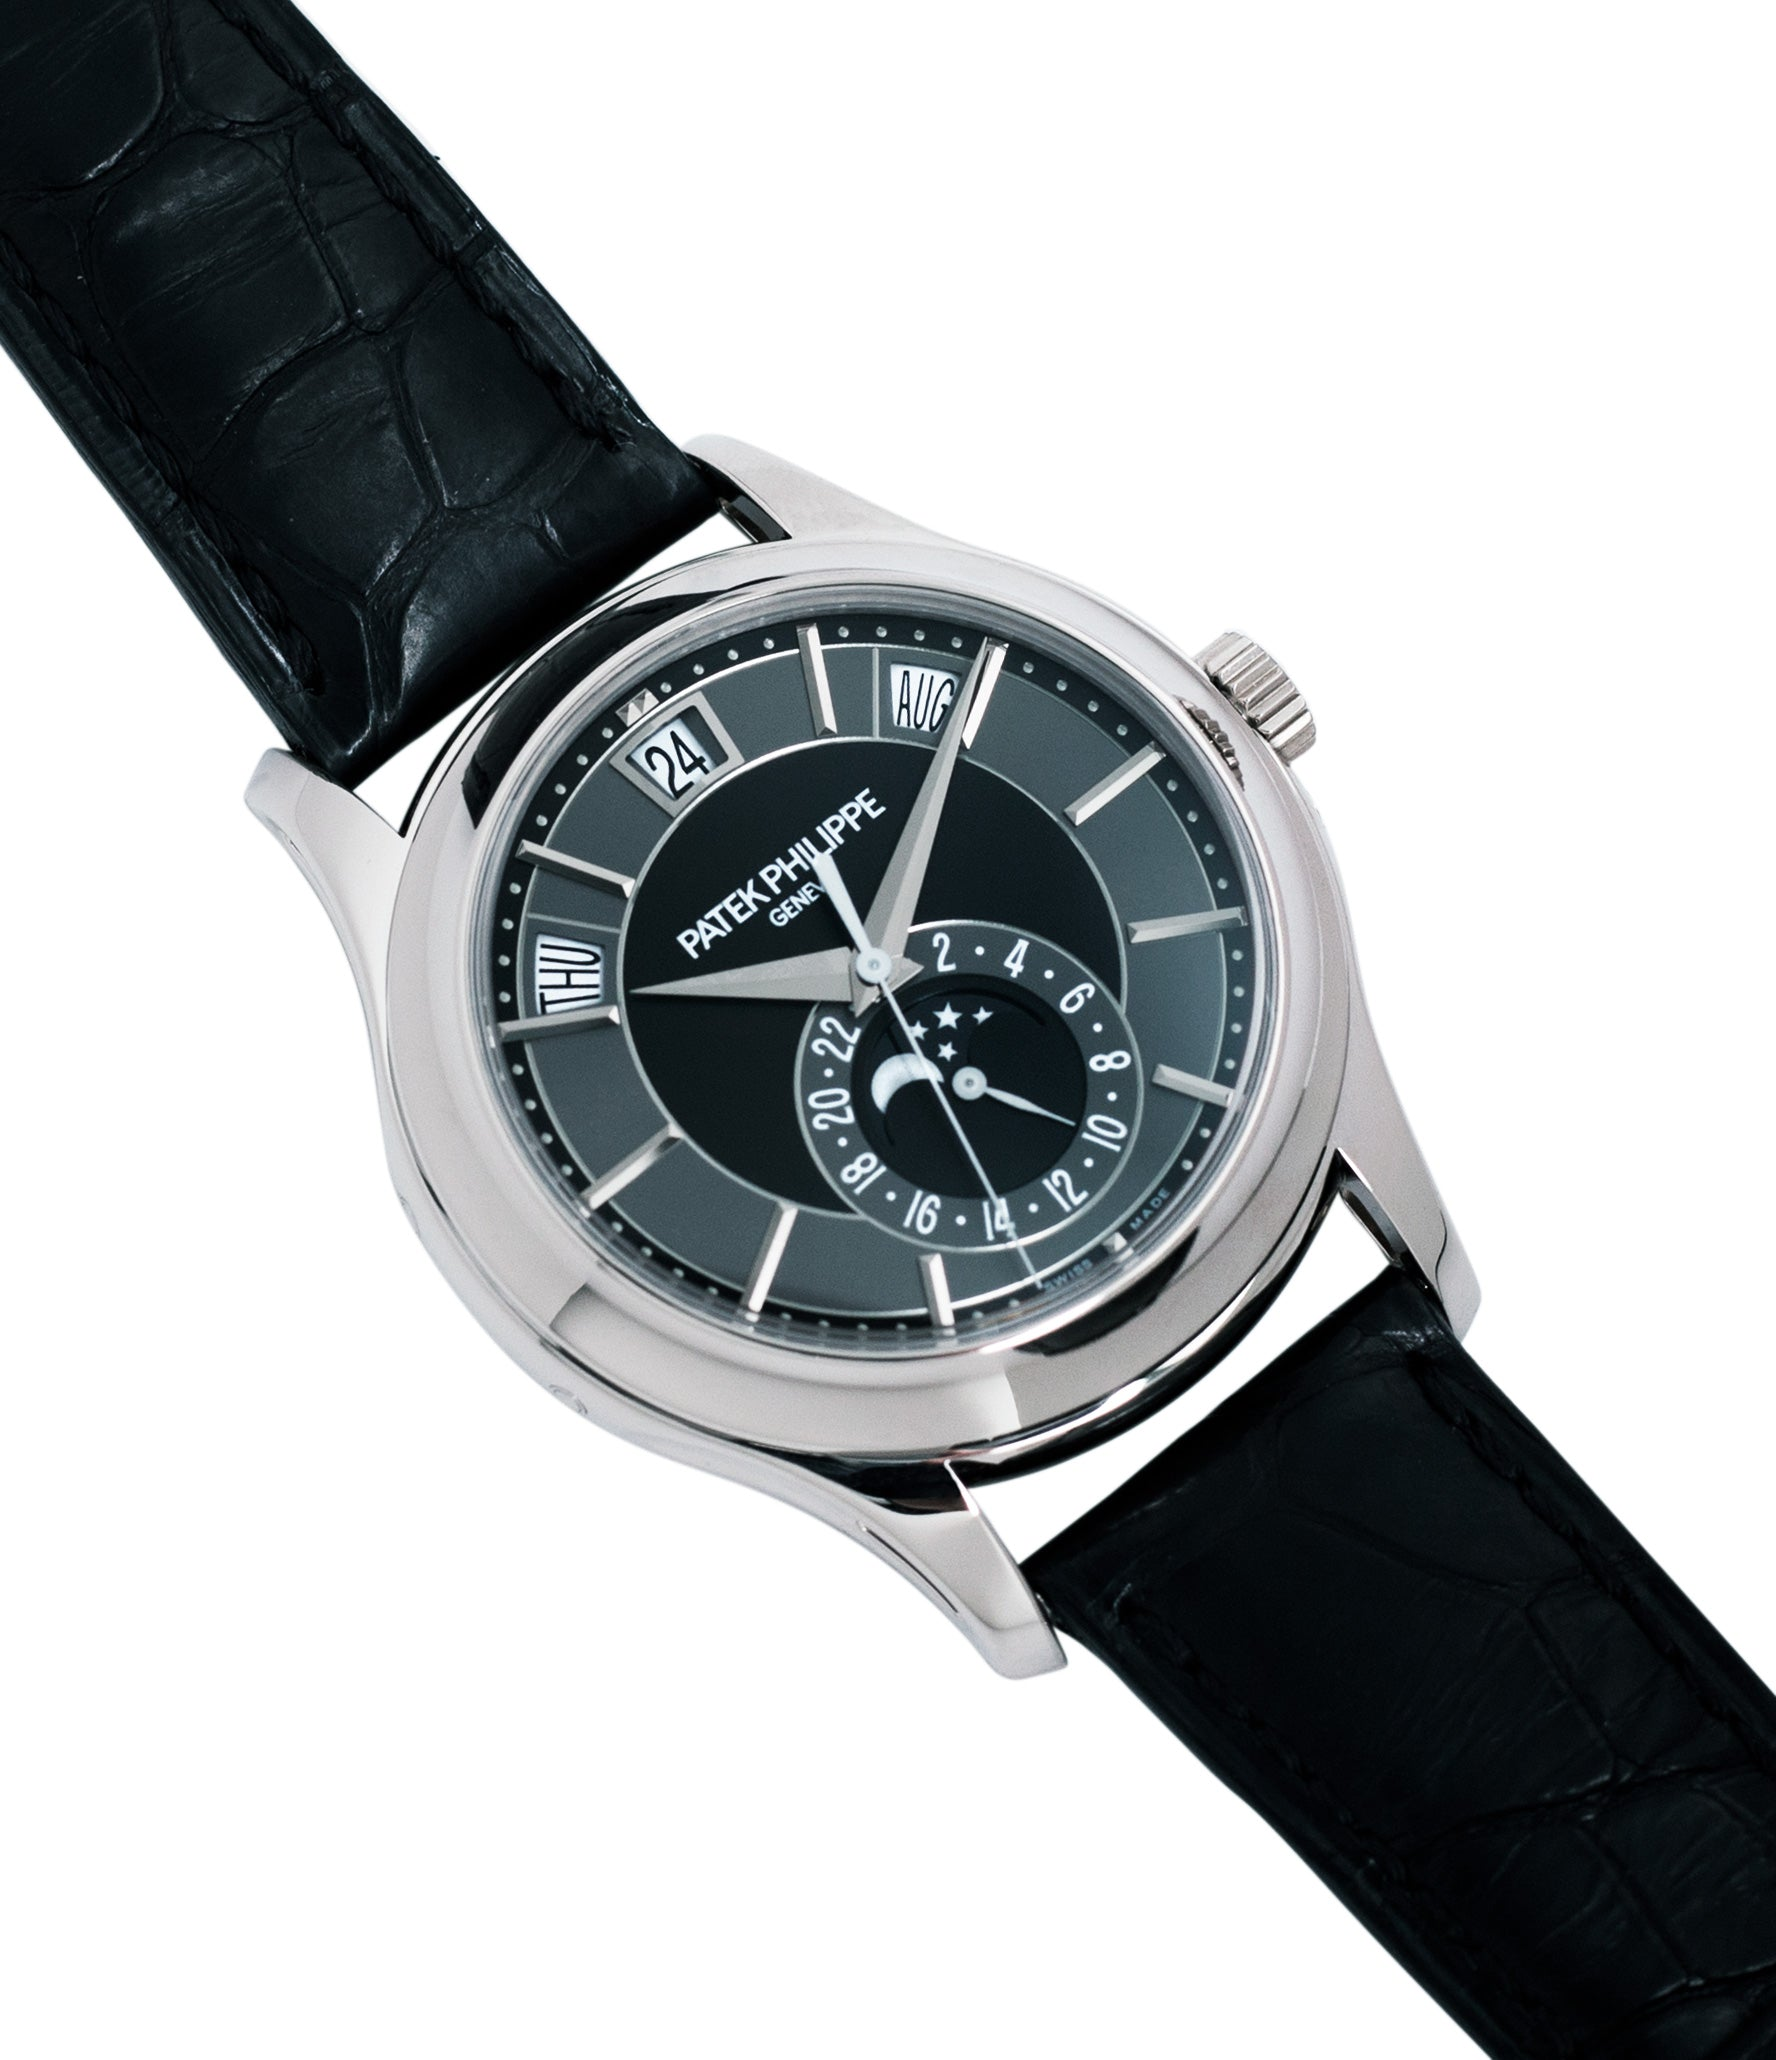 selling preowned Patek Philippe Annual Calendar Moonphase 5205G-010 white gold watch online at A Collected Man London specialist retailer of rare watches UK